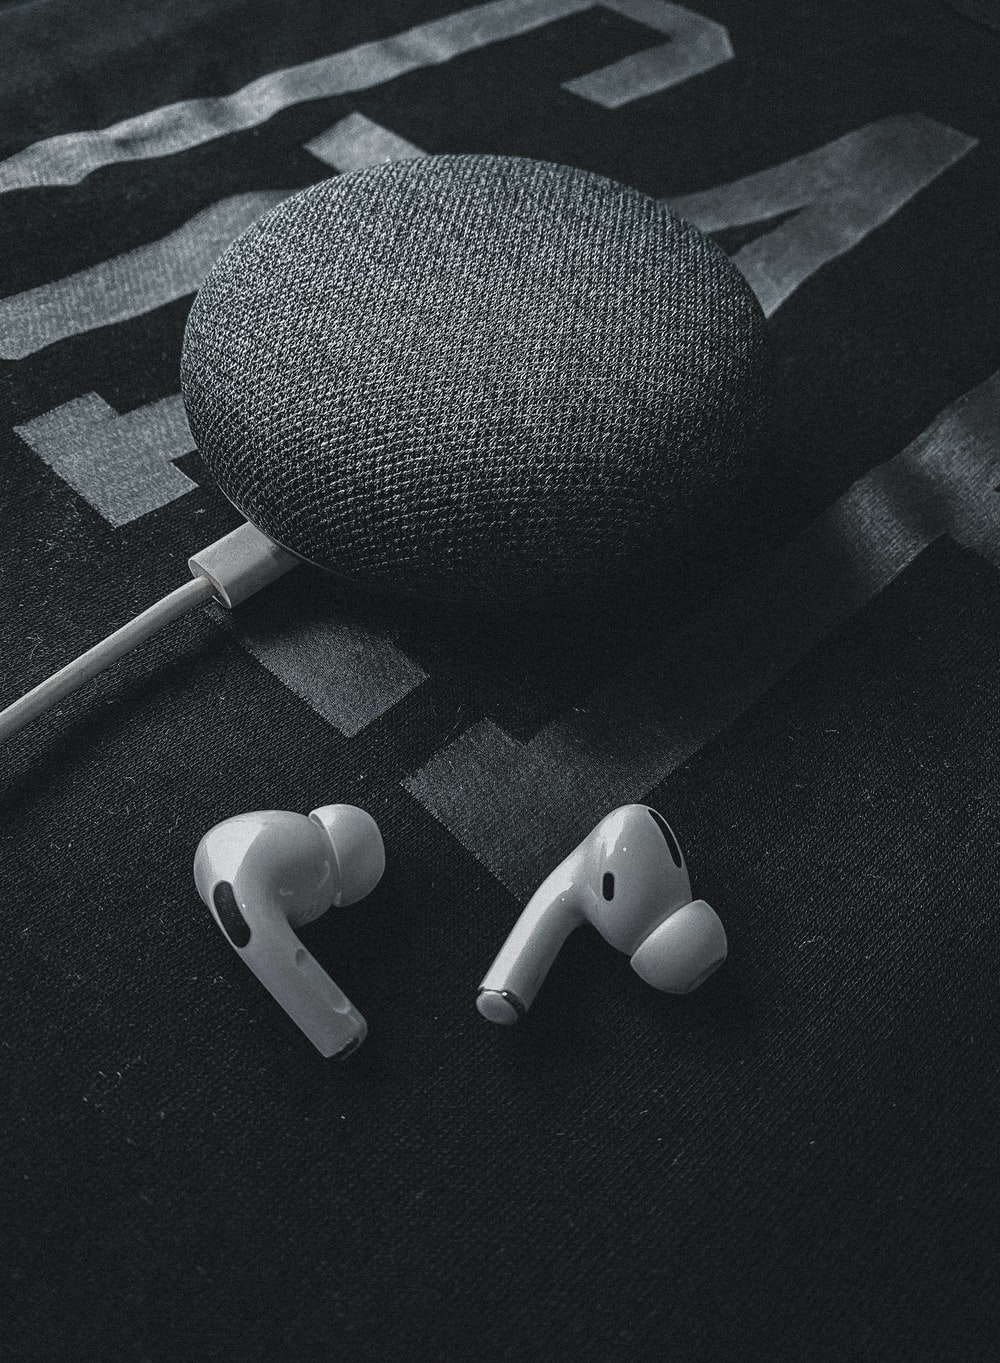 white earbuds on black textile